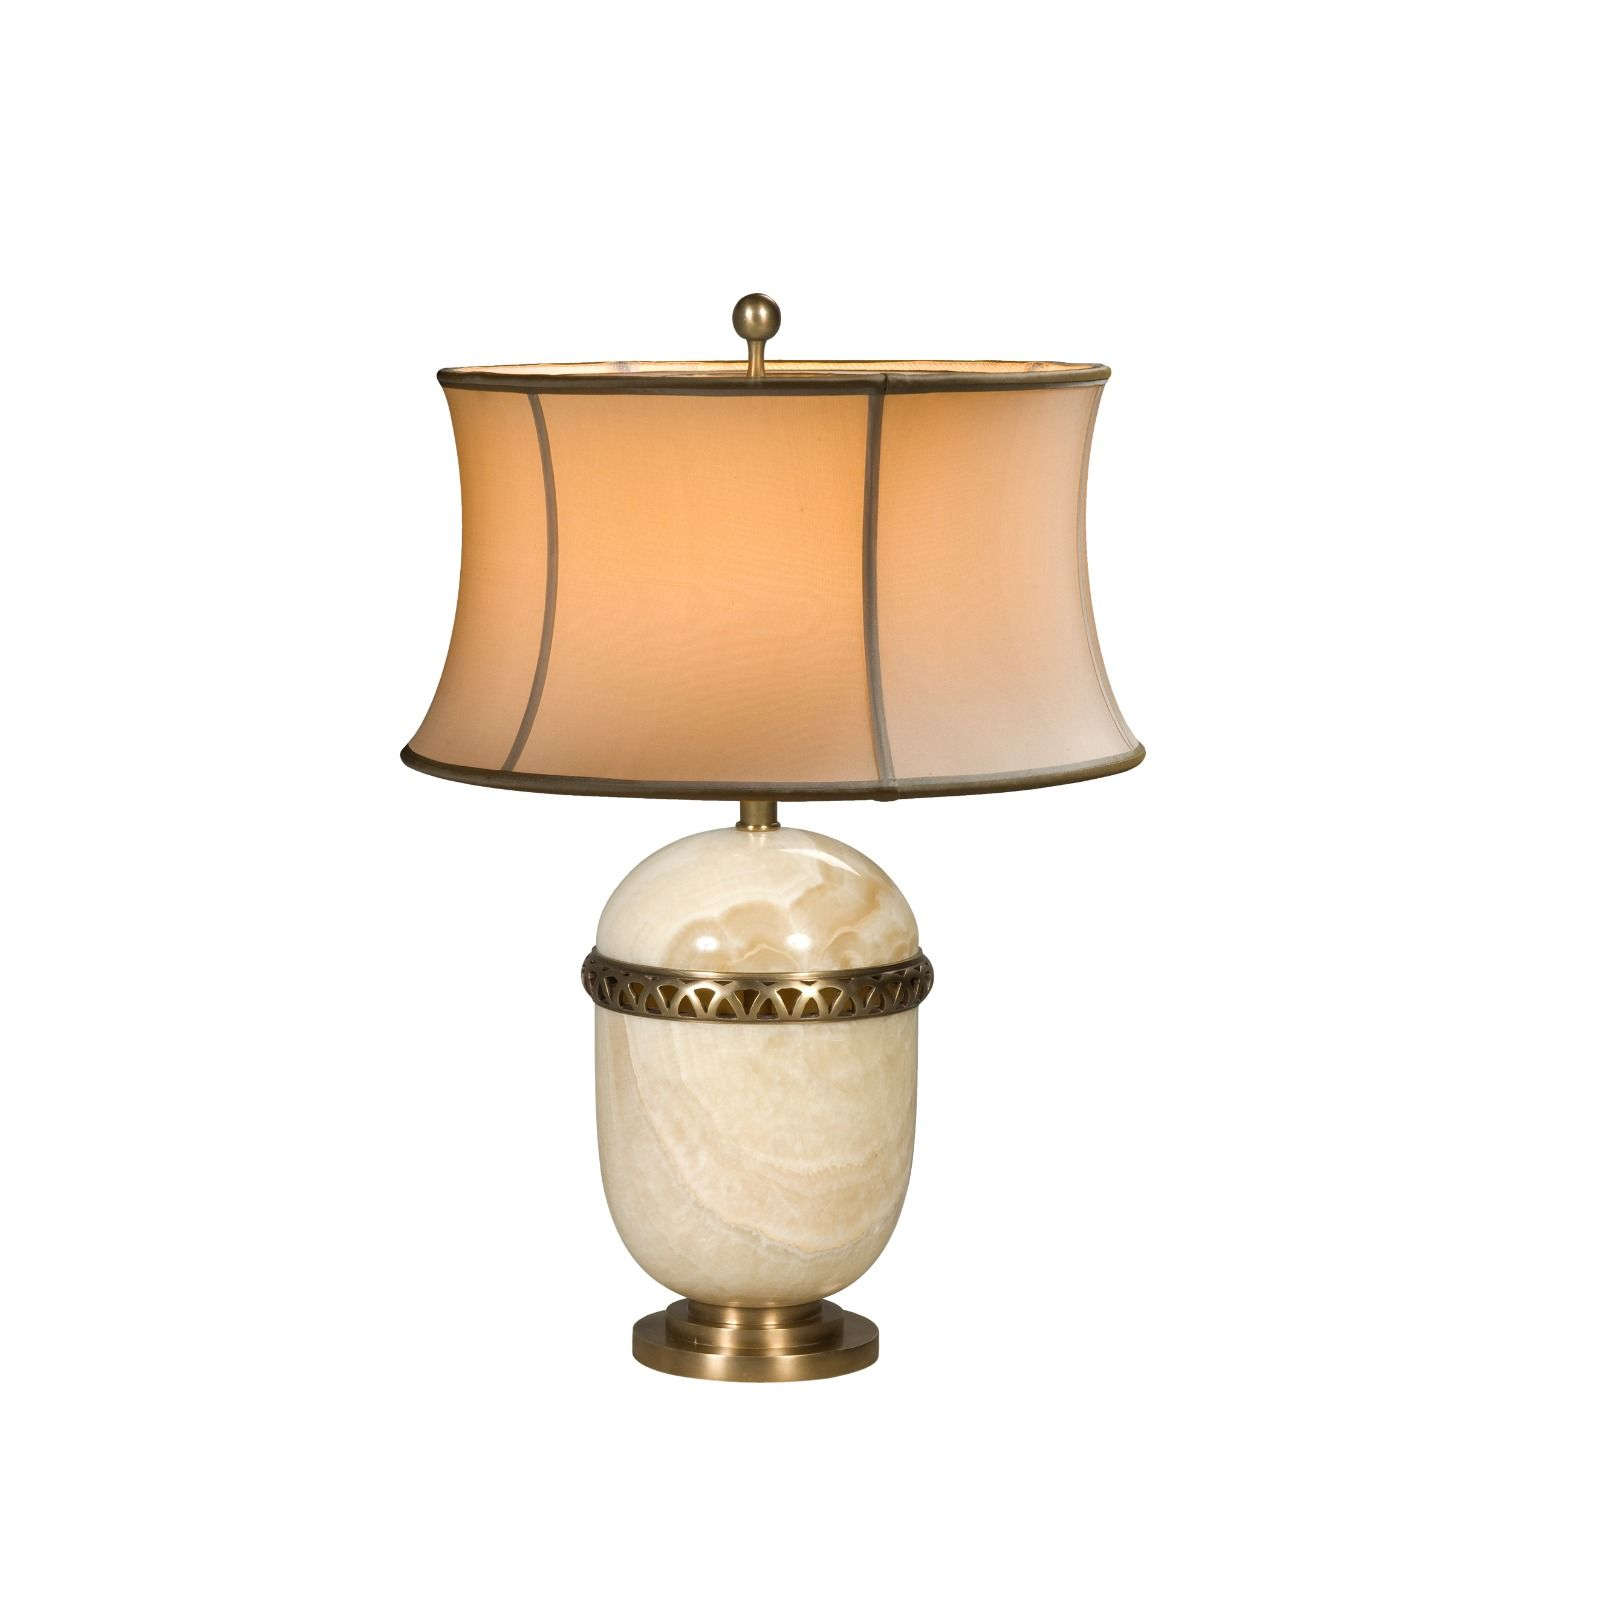 An alabaster and brass table lamp